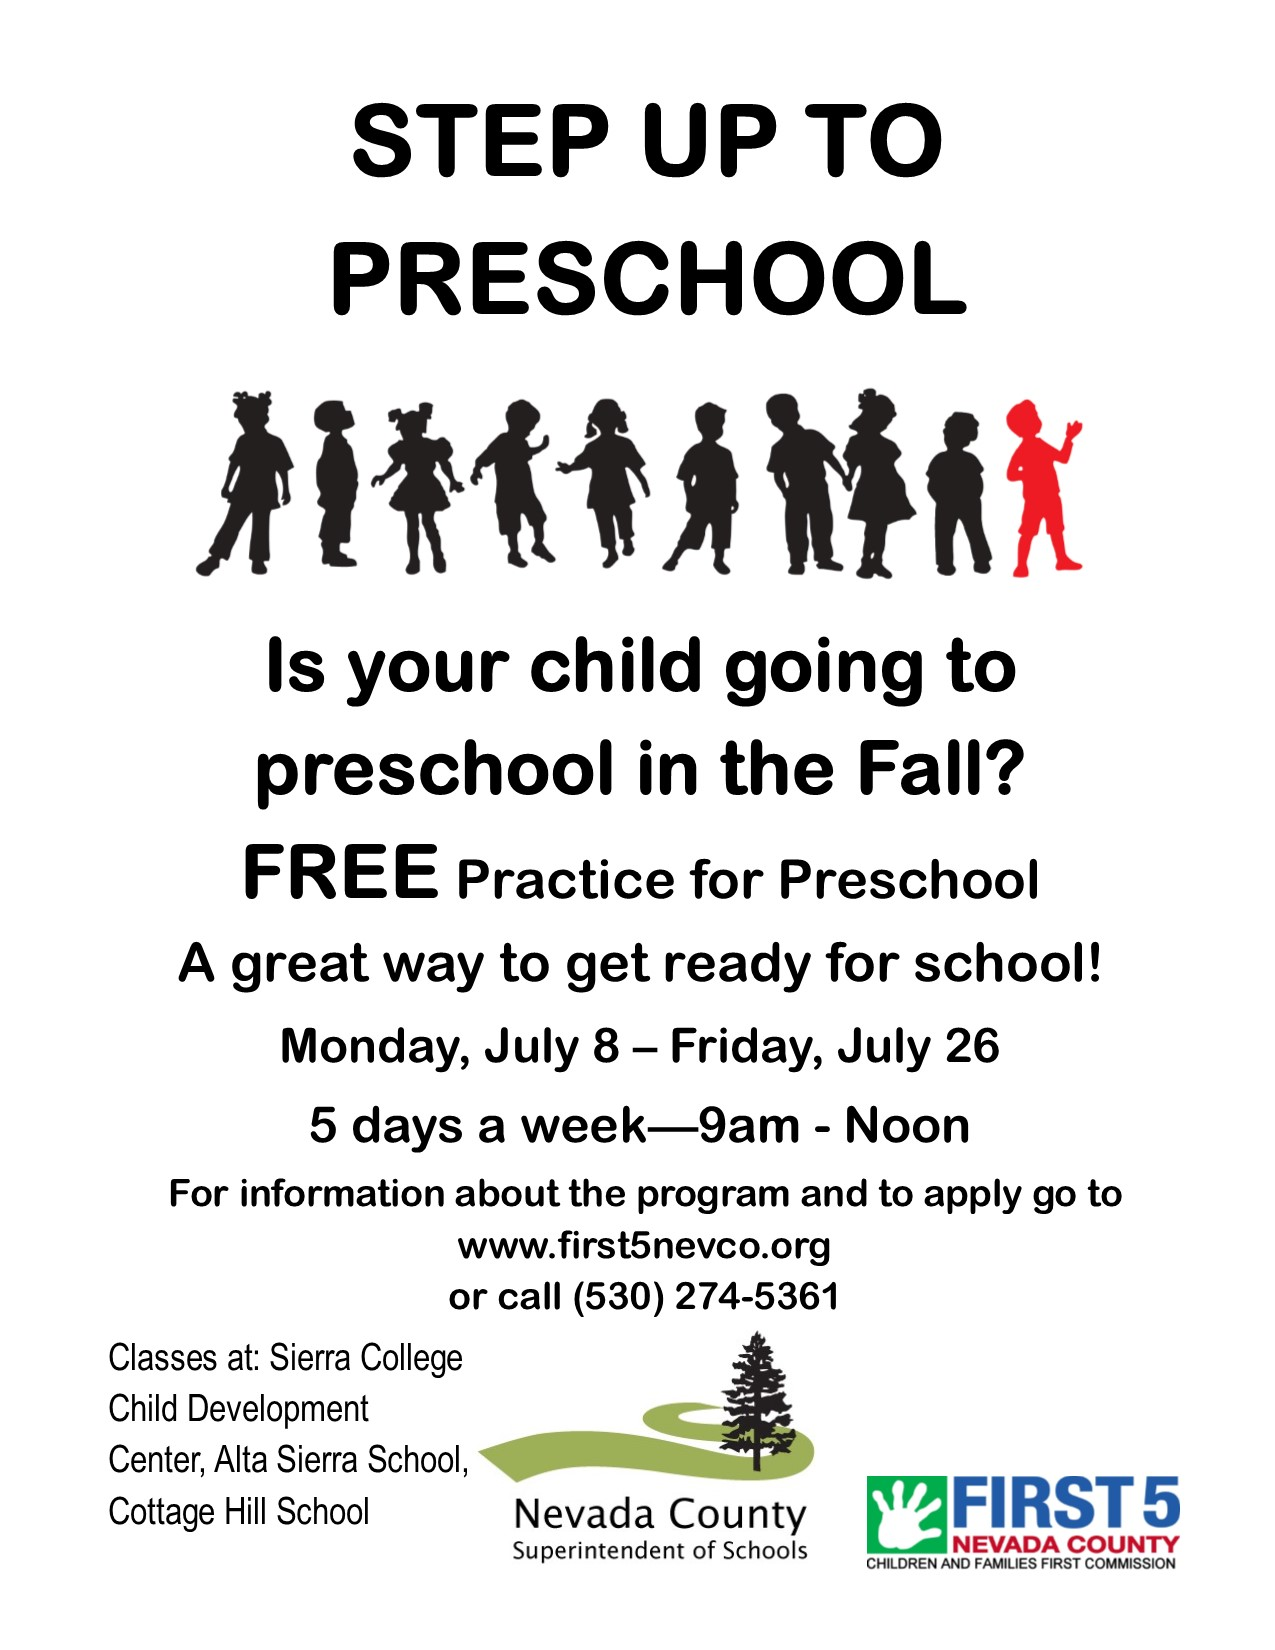 Step Up to Preschool and Step Up to Kindergarten